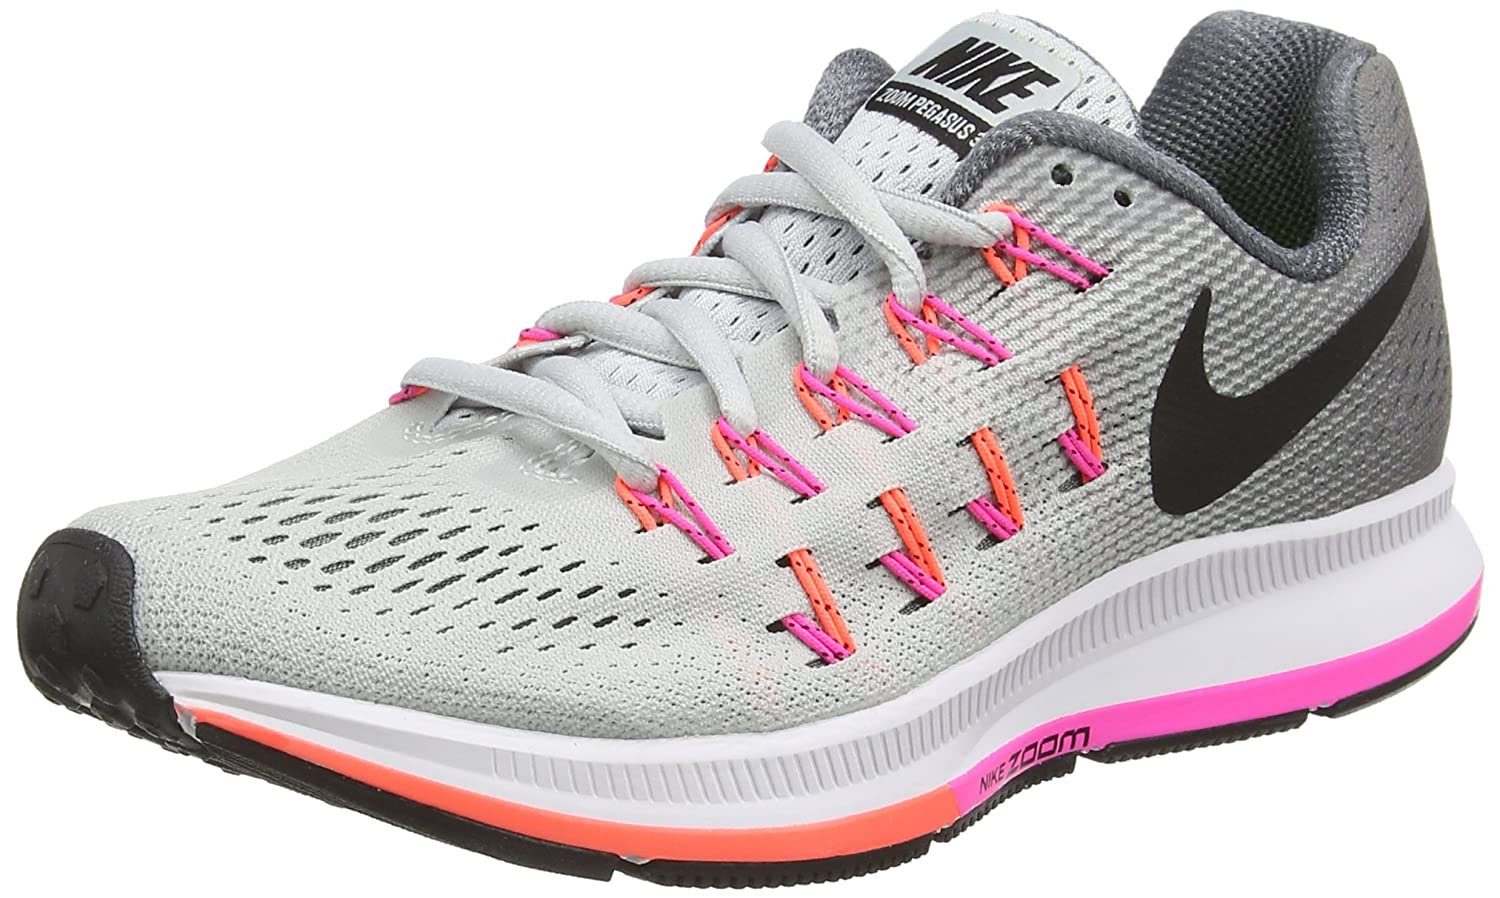 NIKE Women's Air Zoom Pegasus 33 B015NTCNU2 6 B(M) US|Platinum/Black/Grey/Pink Blast